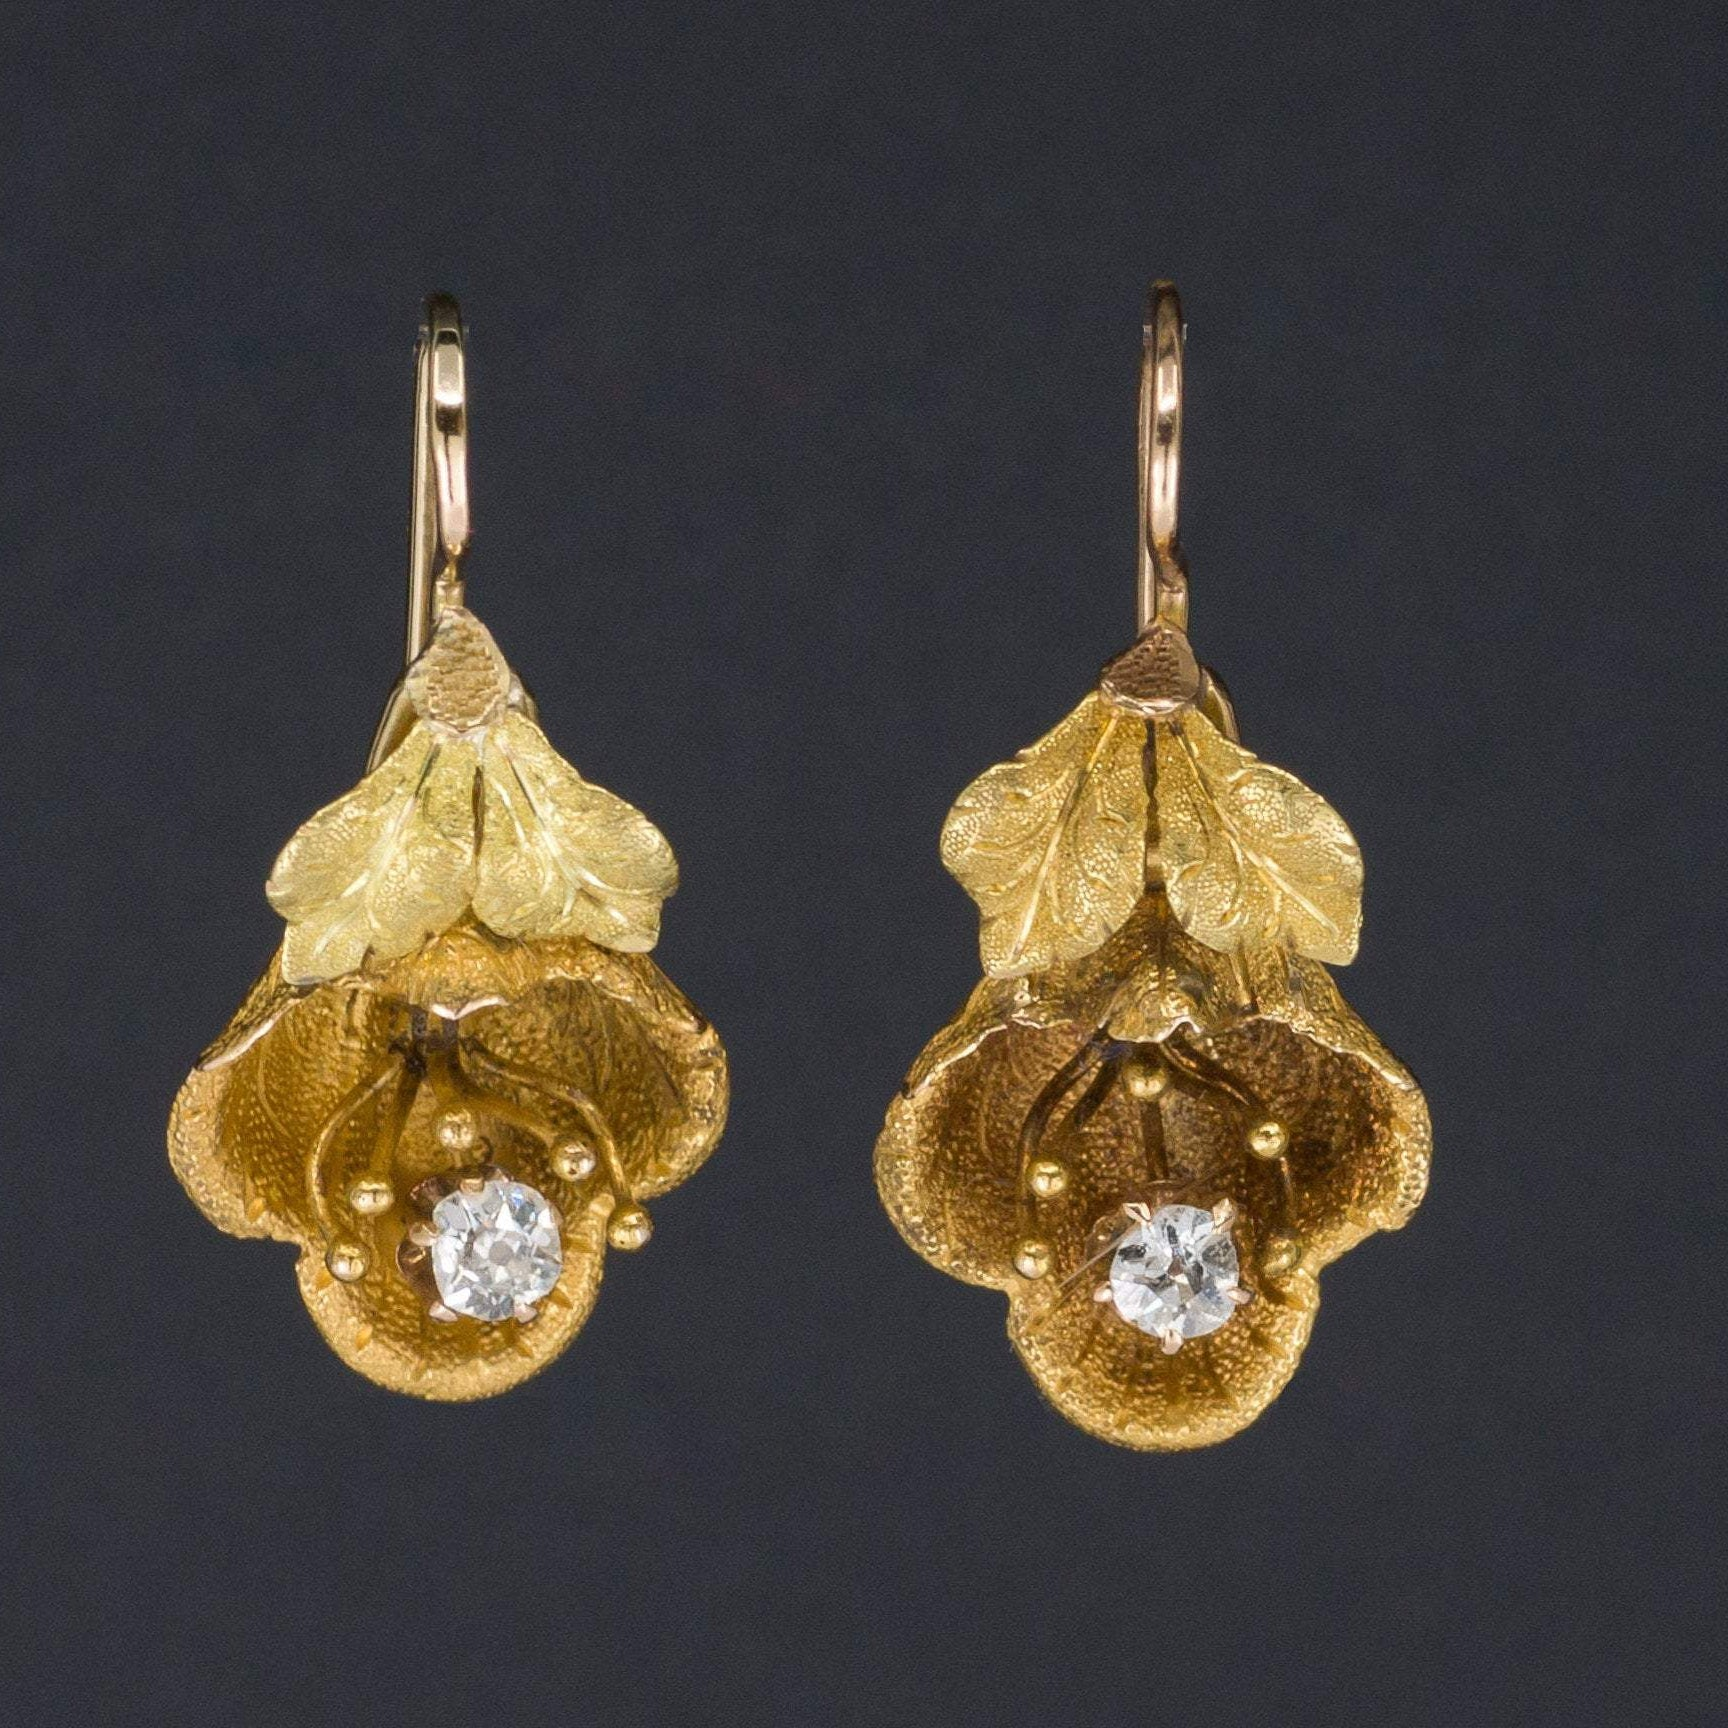 Diamond Flower Earrings | Antique Flower Earrings | 14k Gold Flower Earrings | Bridal earrings